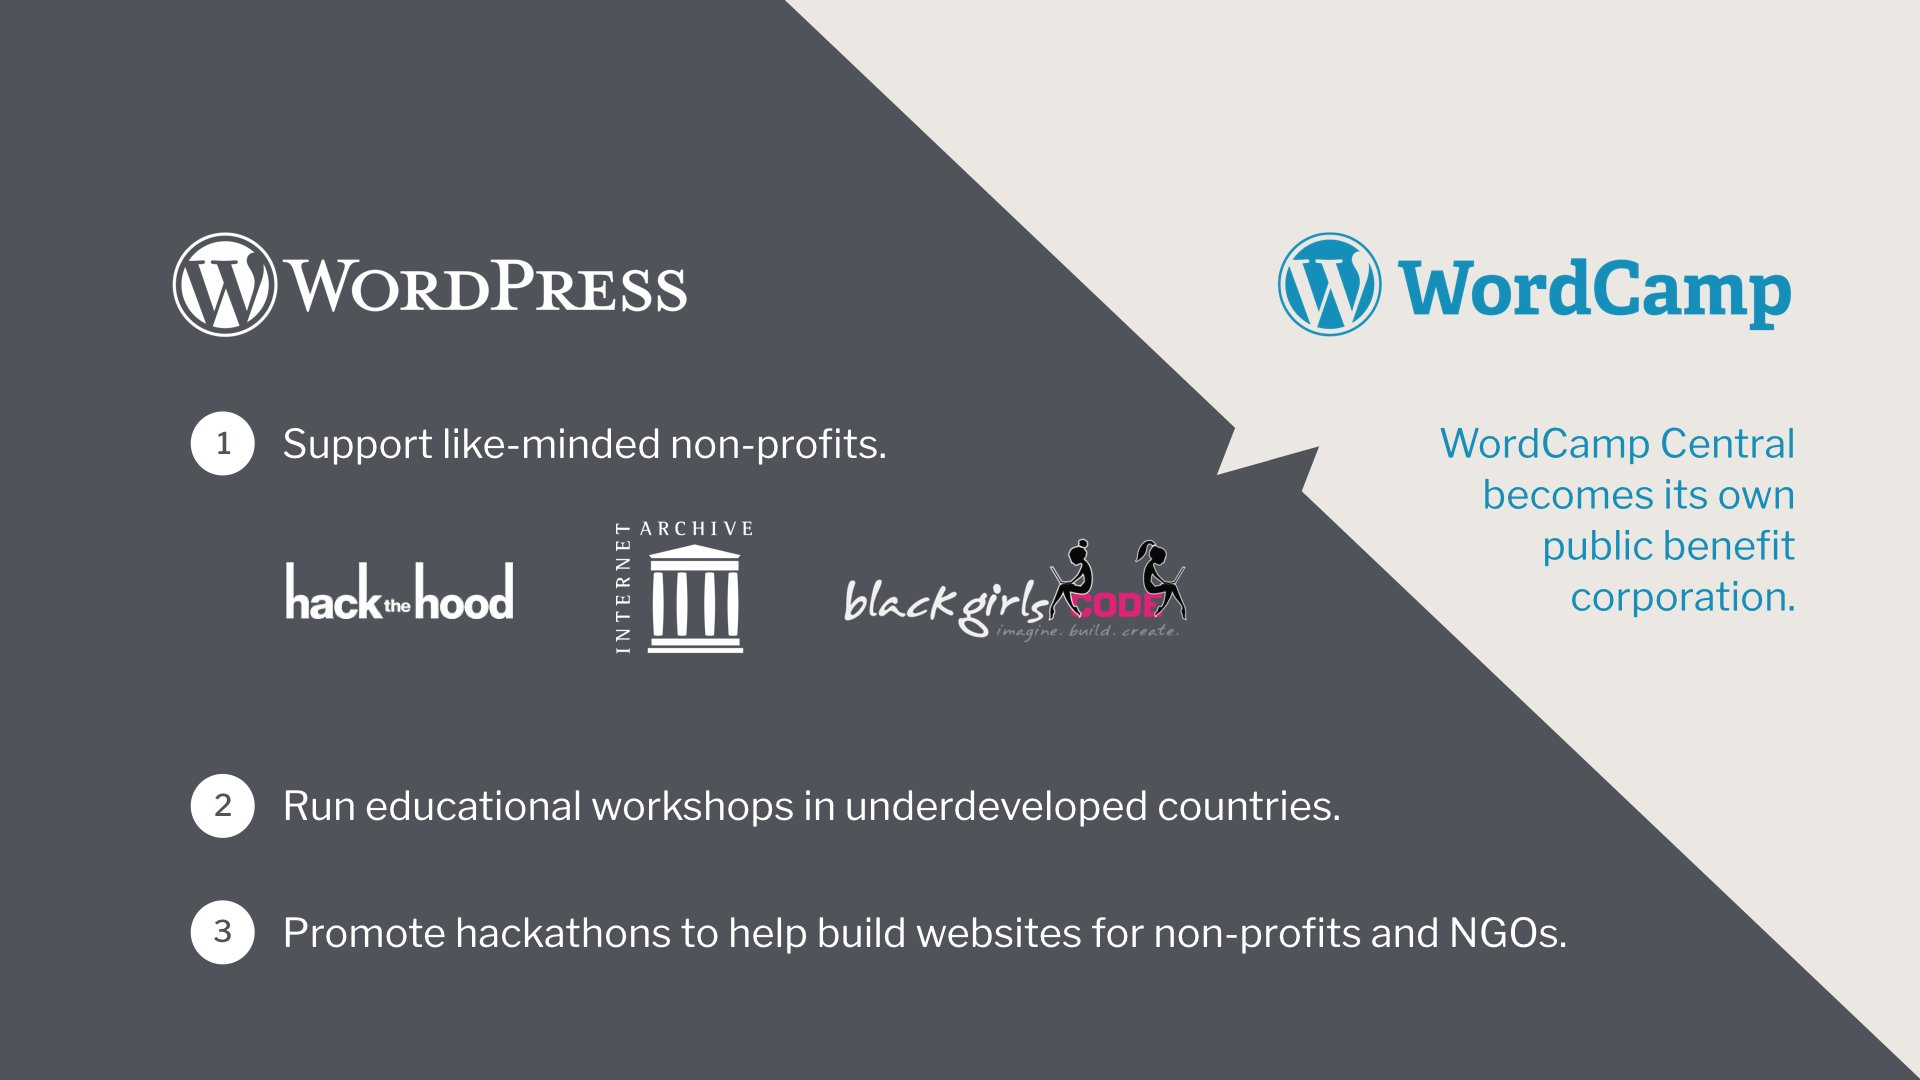 The Foundation will focus on supporting like-minded non-profits, education/workshops, and hackathons that benefit non-profits/NGOs. #wcus https://t.co/6VfdP82KuM